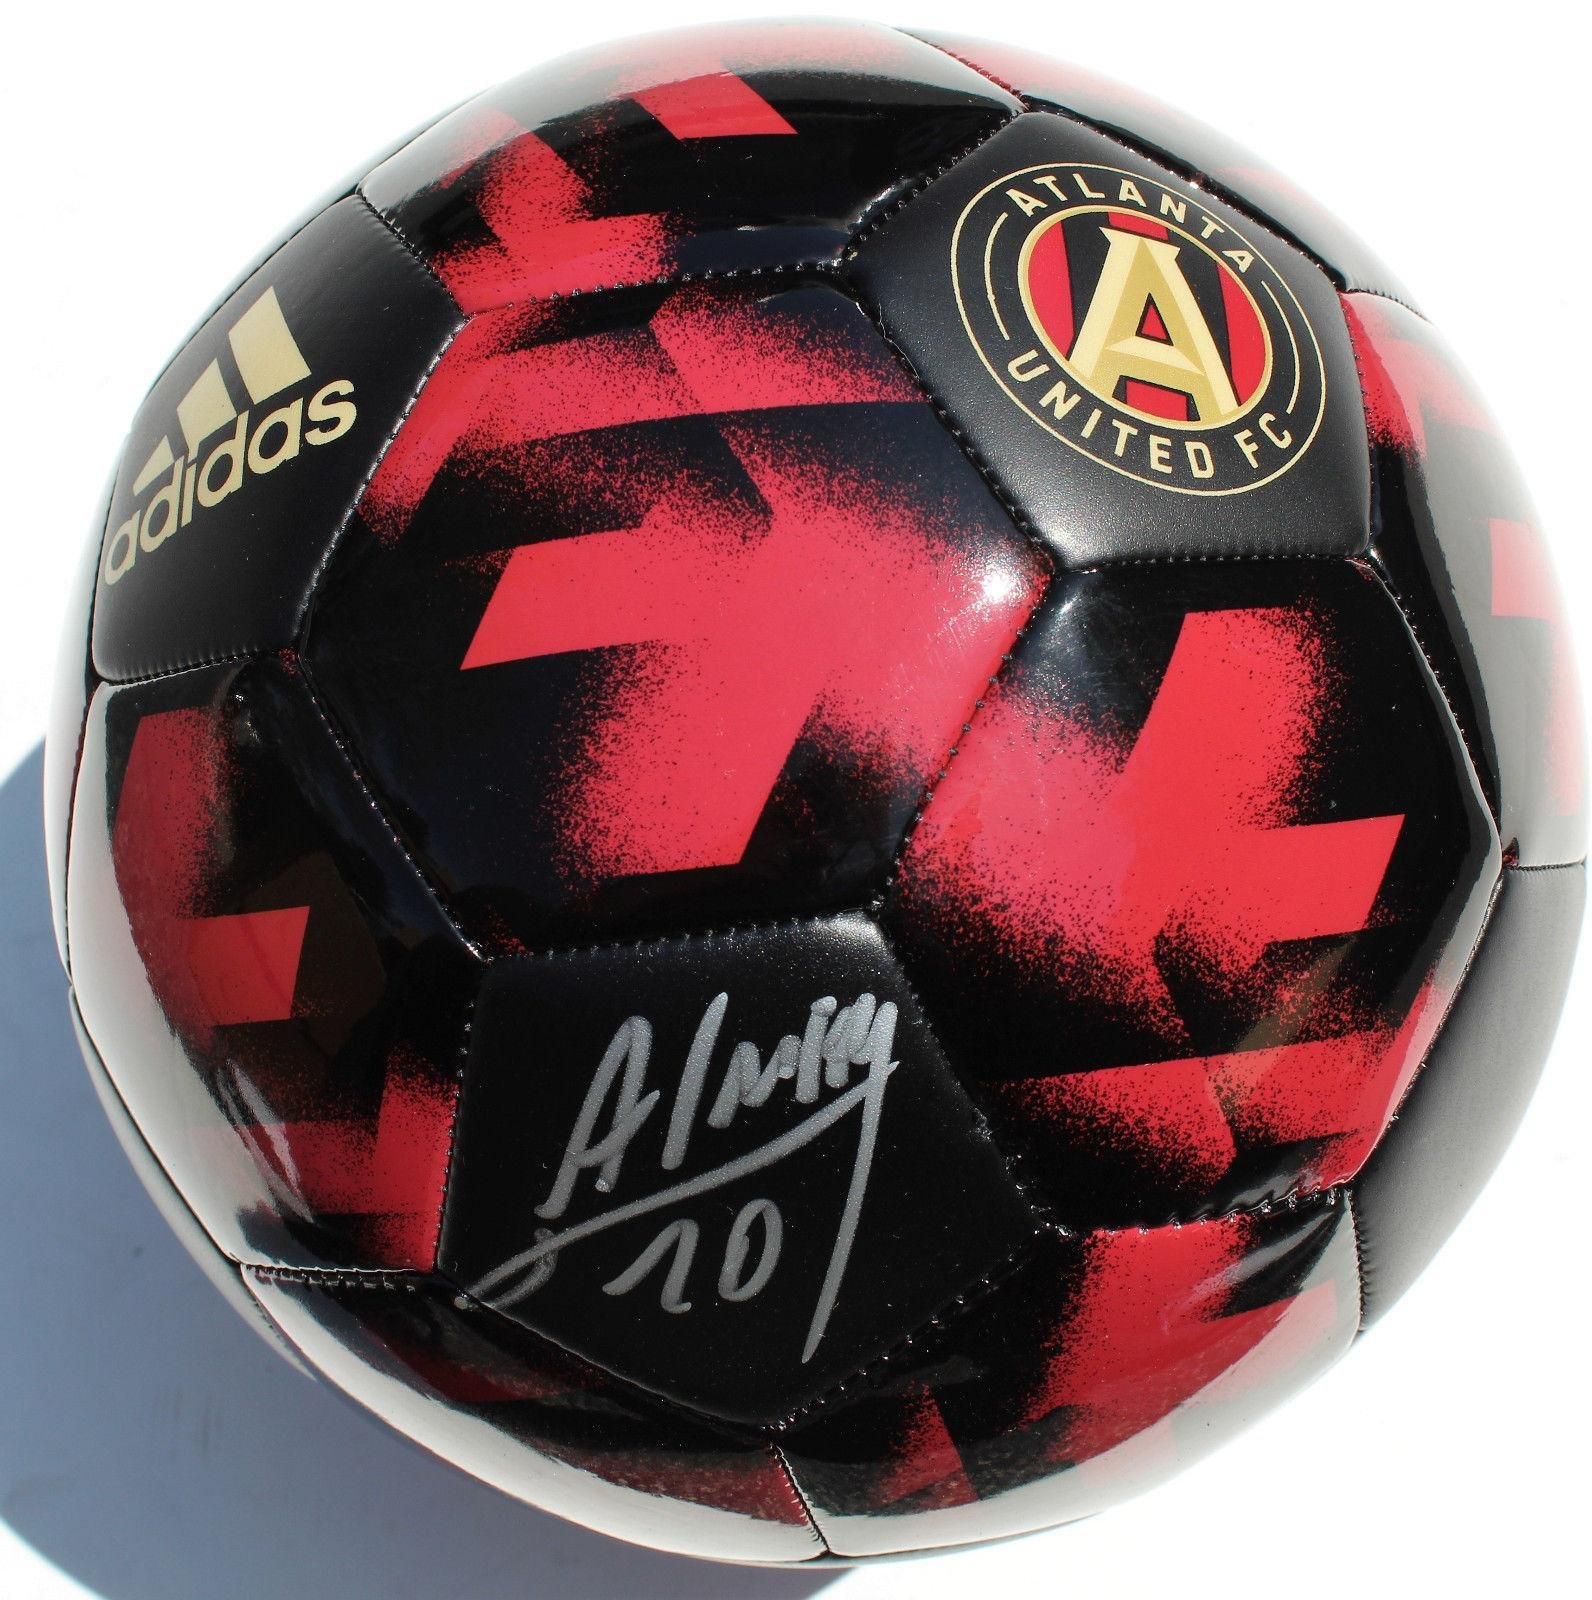 Miguel Almiron Signed Atlanta United FC Soccer Ball w/COA Size 5 Autographed Soccer Balls